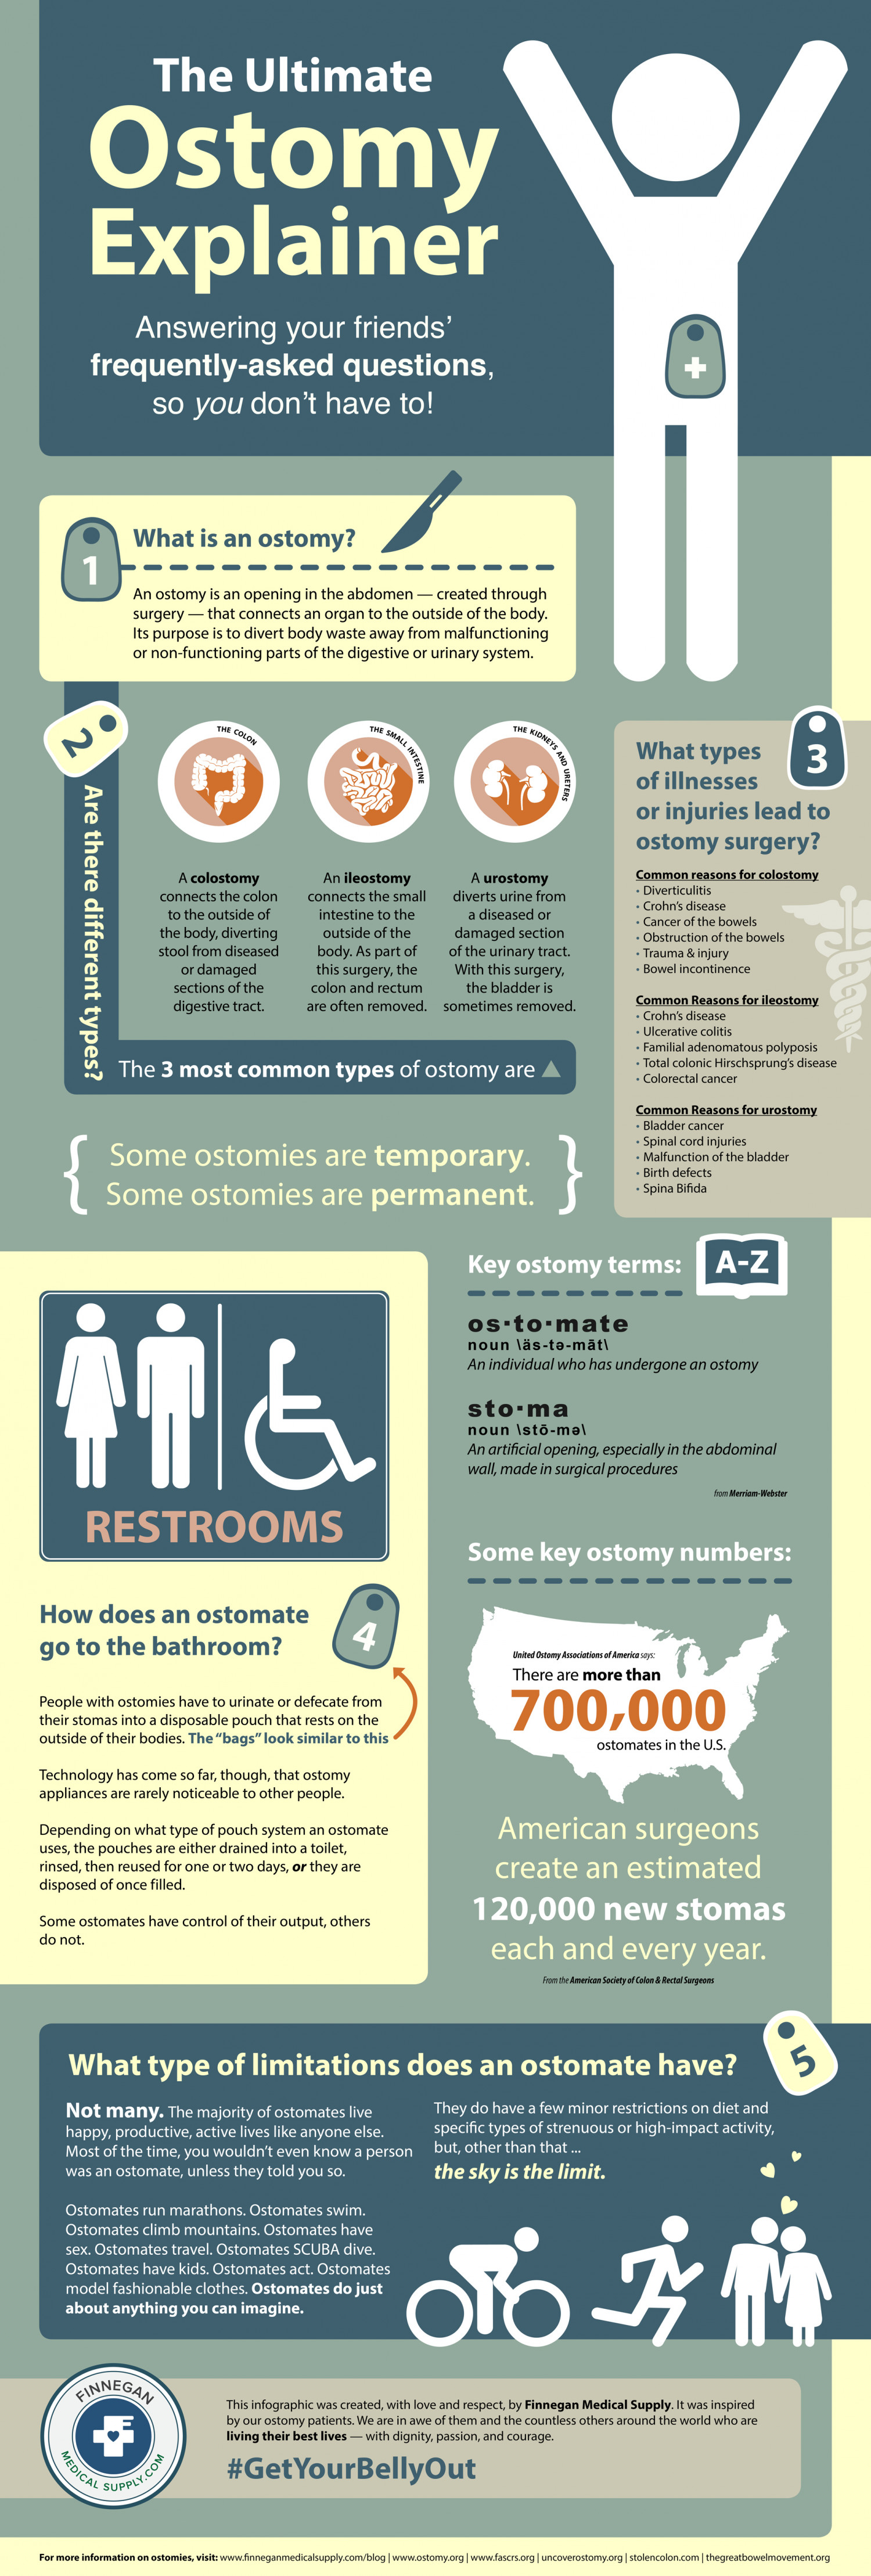 The Ultimate Ostomy Explainer Infographic